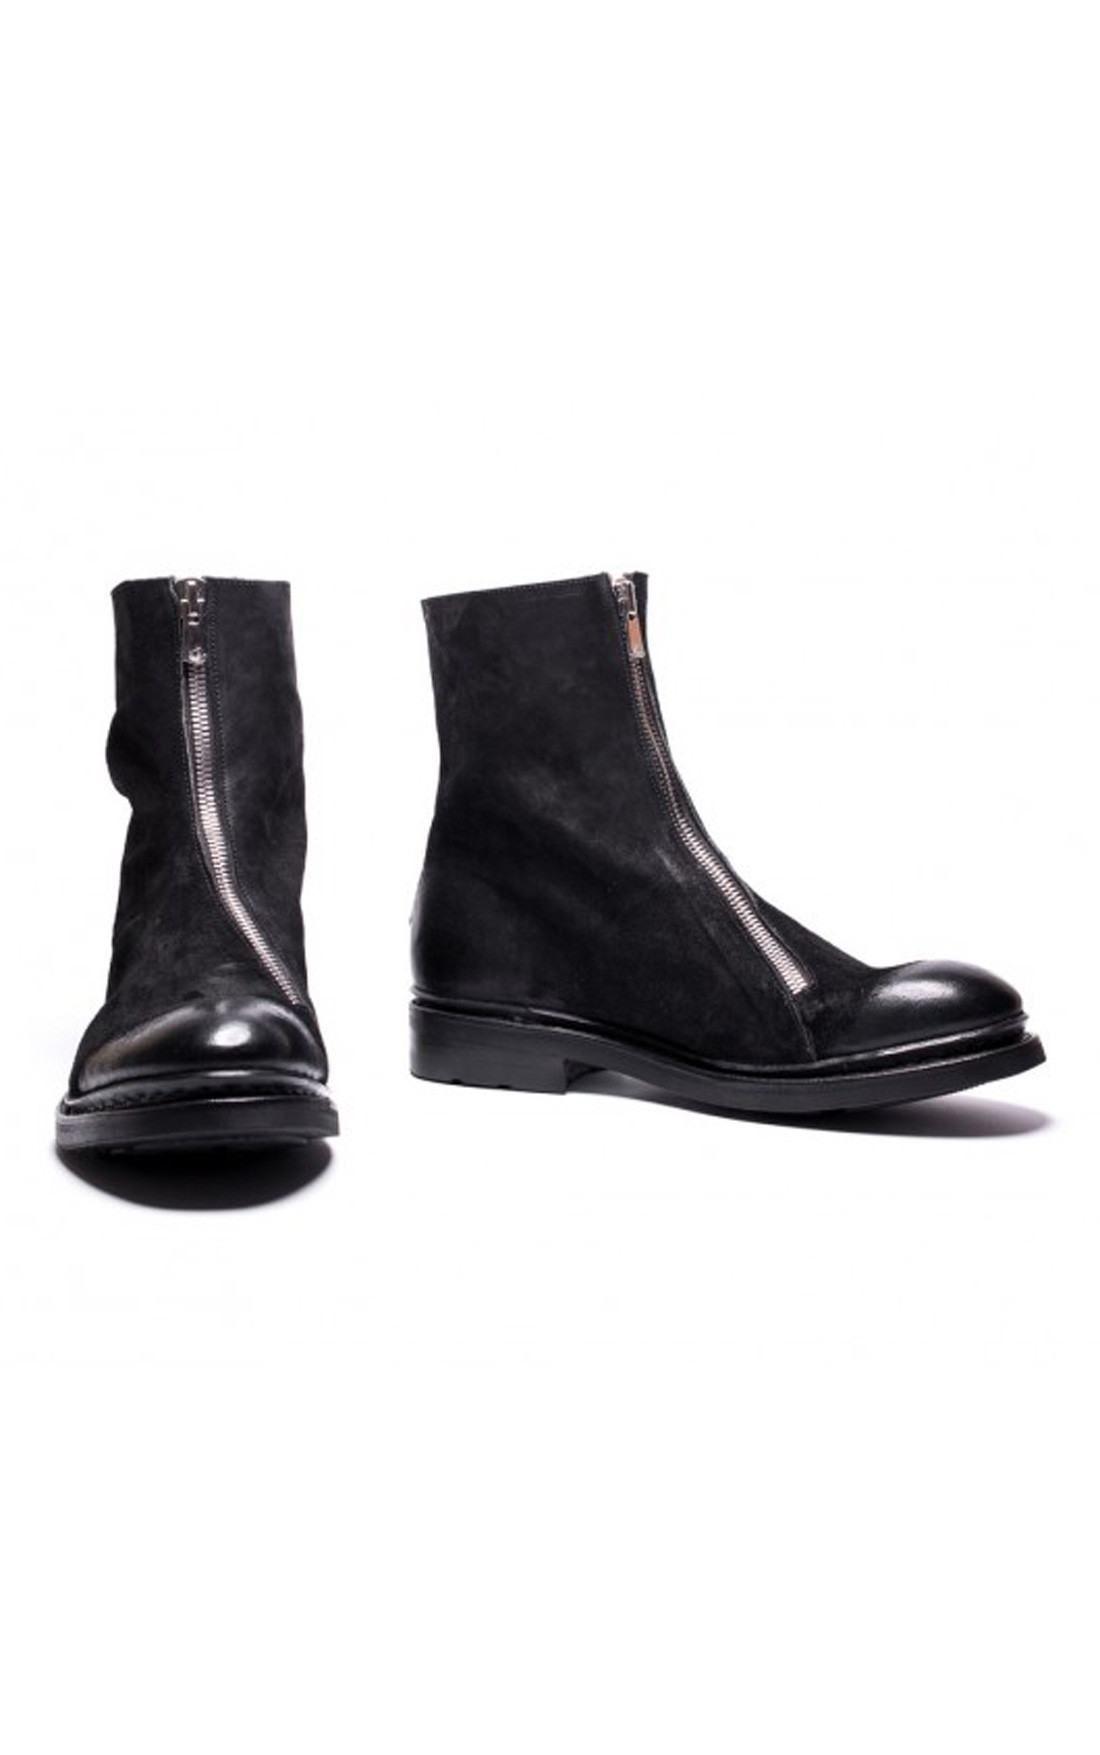 The Last Conspiracy - Magne Waxed Suede Ankle Boots (TLC1744)